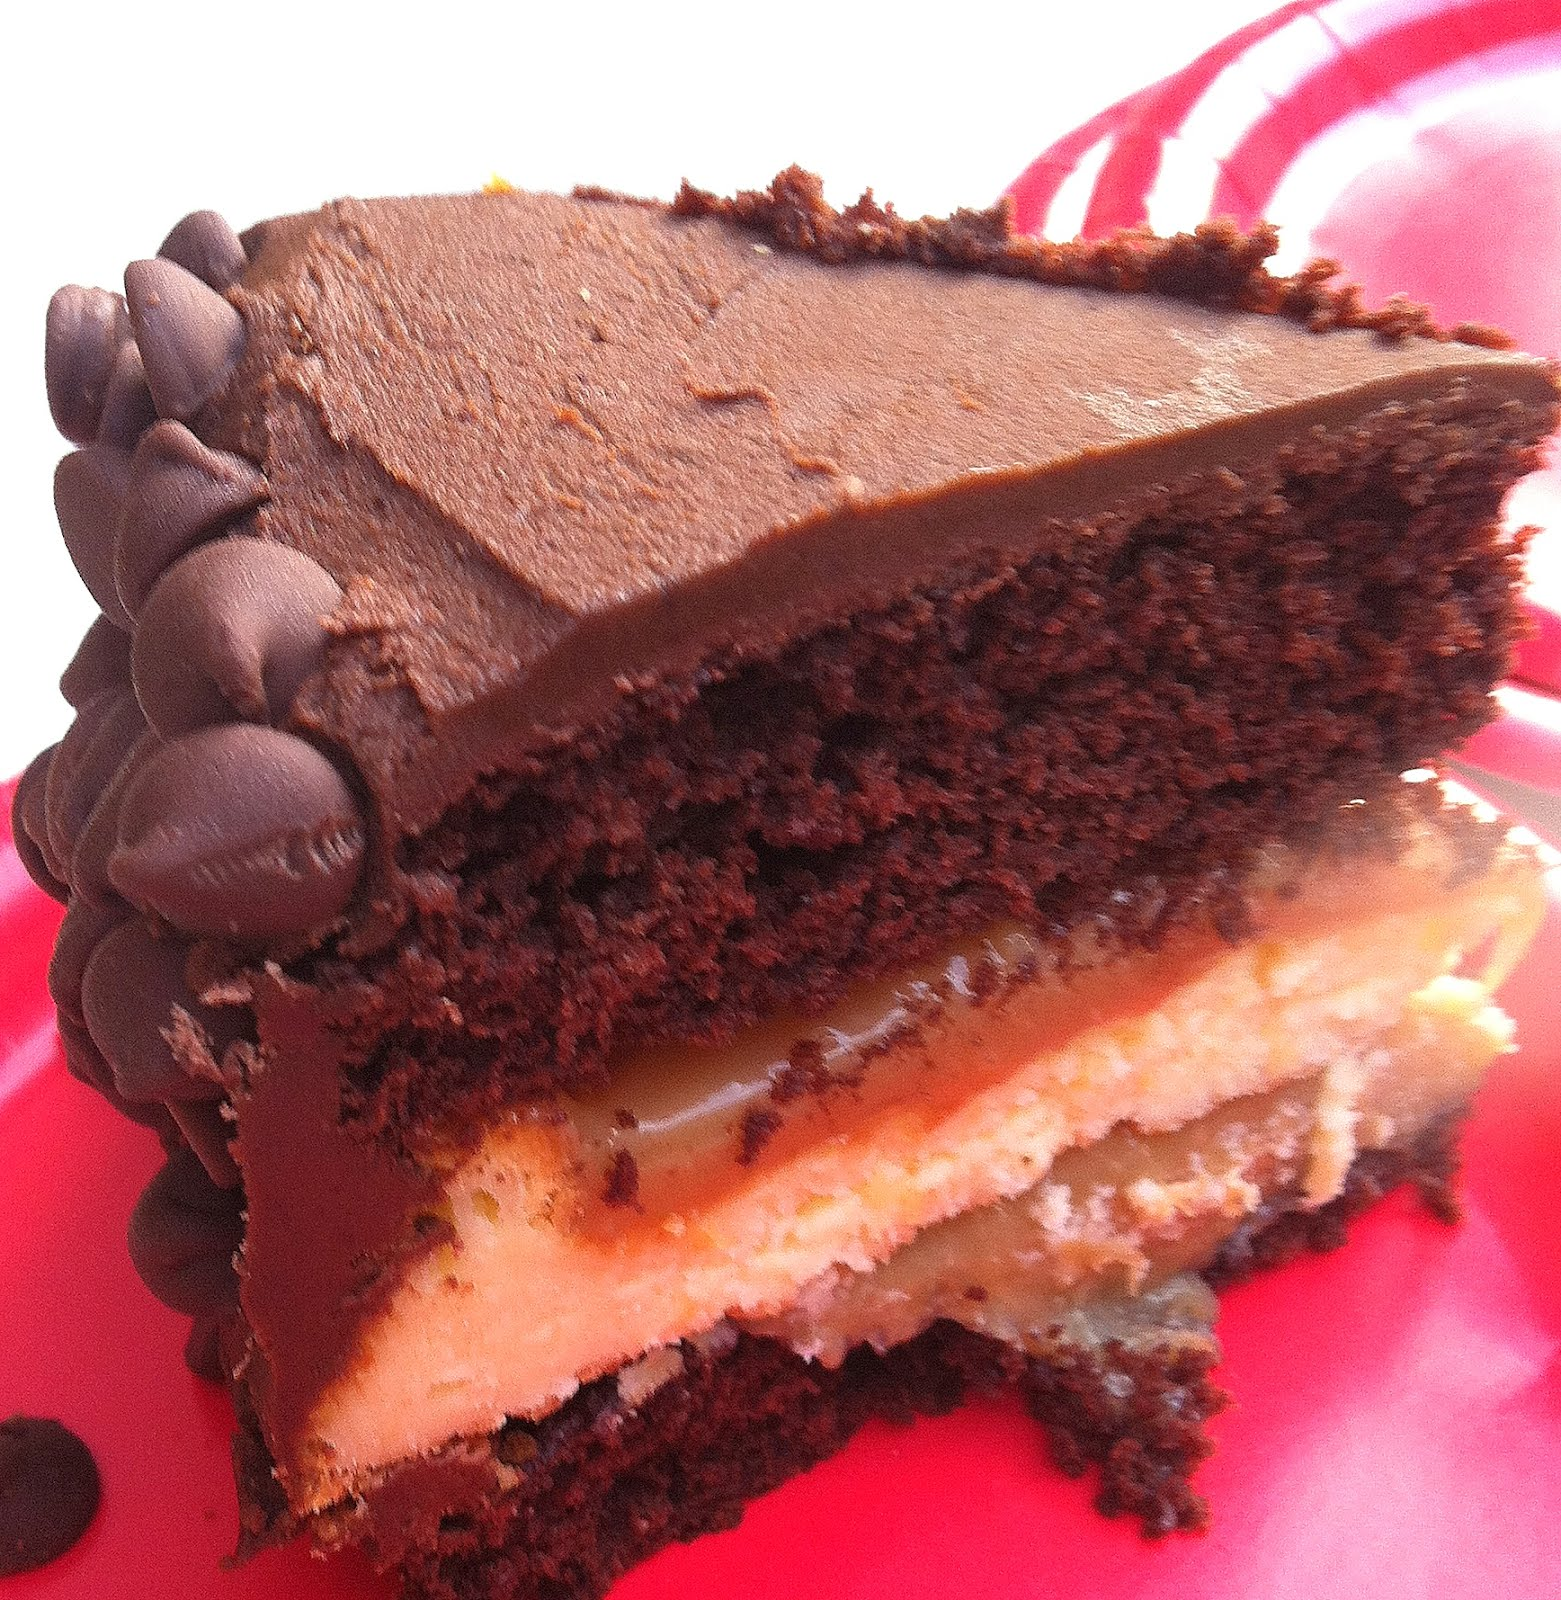 Layer Cake Ddl